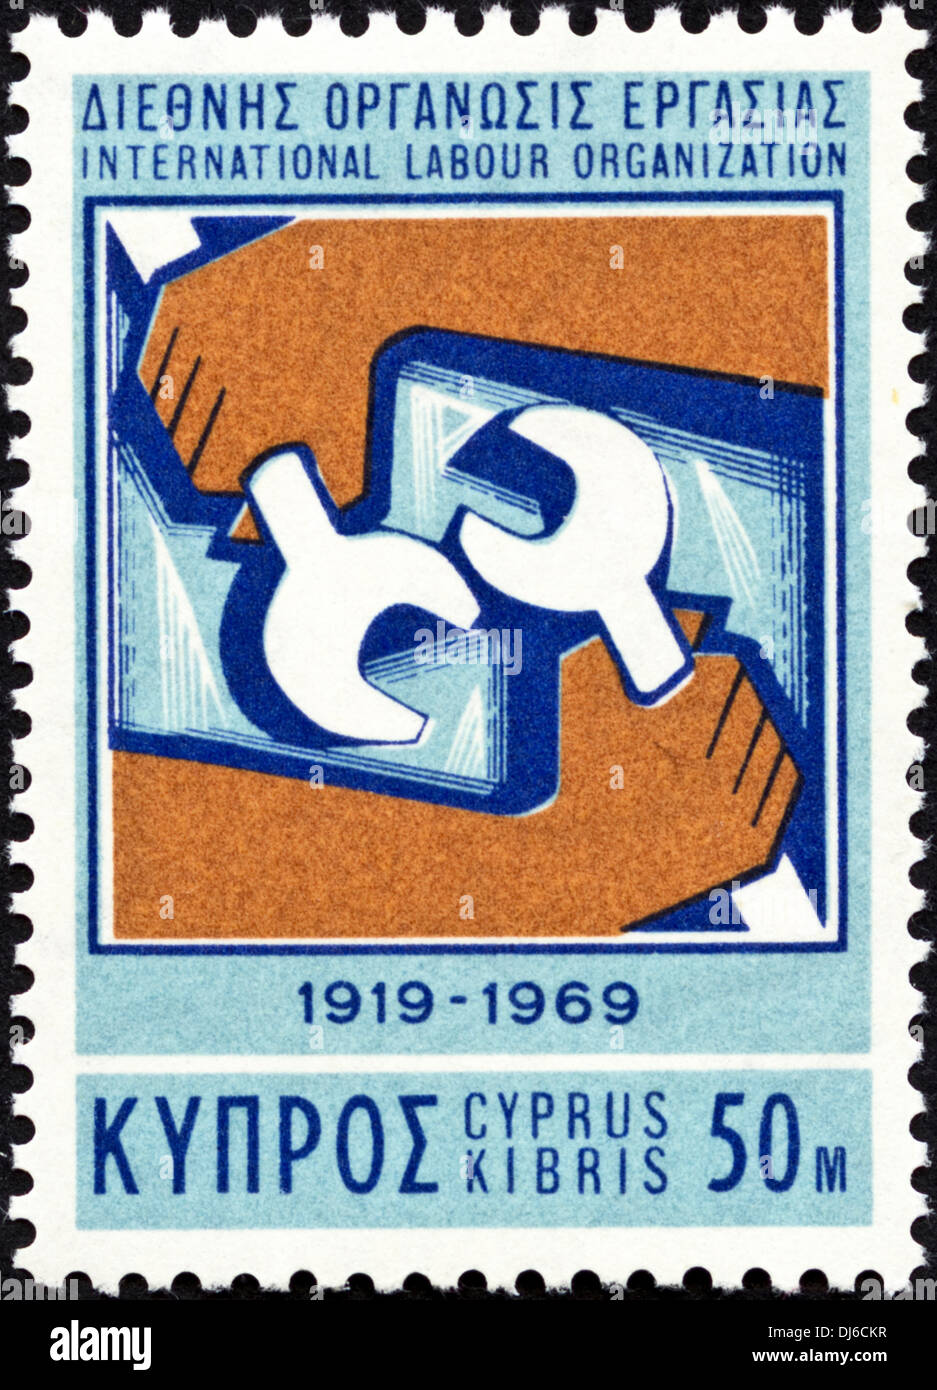 postage stamp Cyprus 50m featuring International Labour Organization 1919 - 1969 dated 1969 - Stock Image